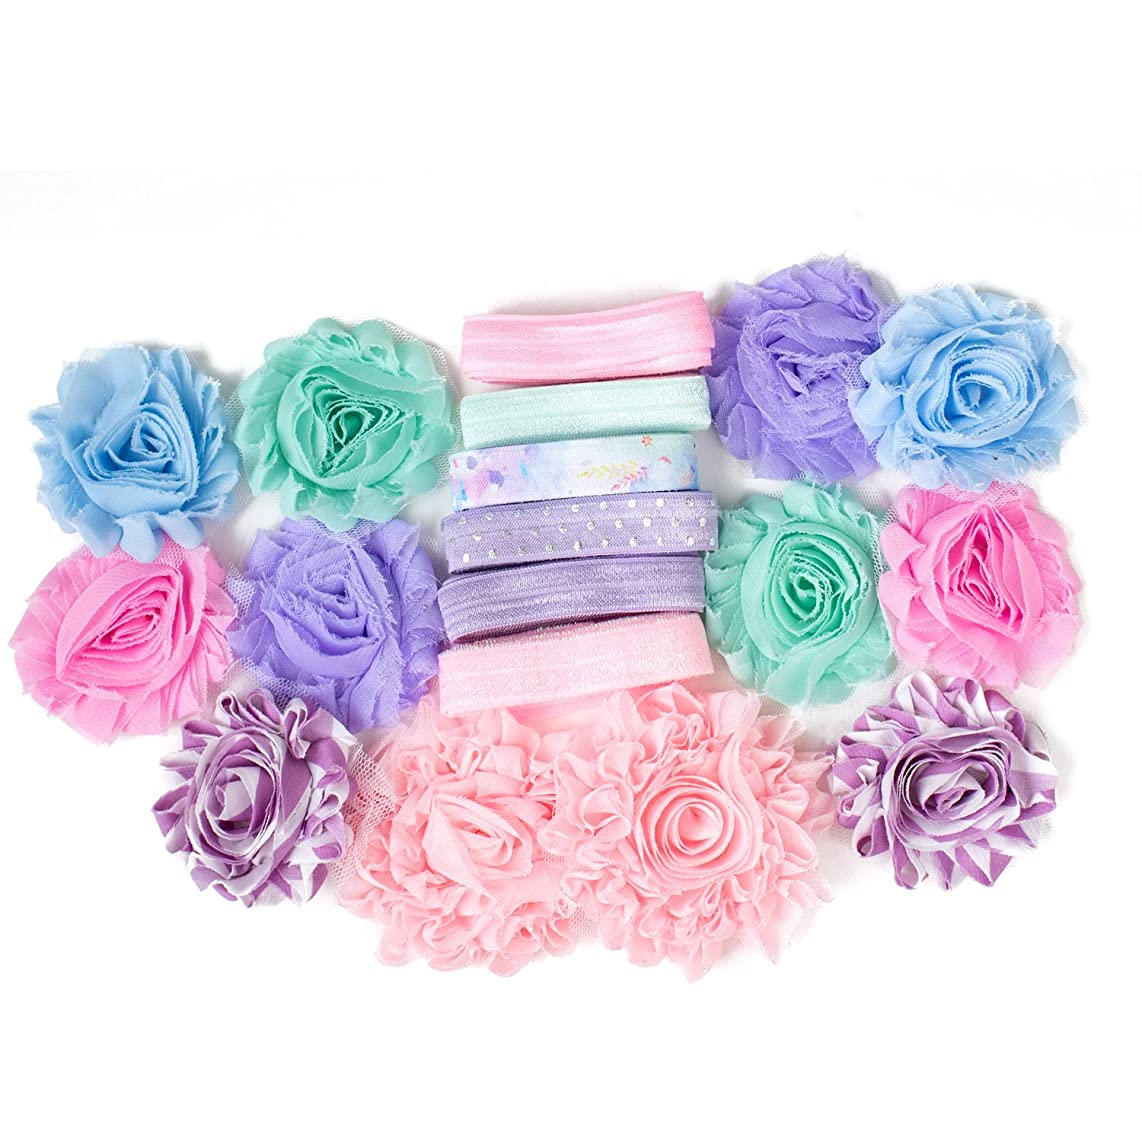 Sweet Dreams : Pink Lavender & Mint DIY Headband Kit Makes 6 or 12 Hair Accessories : Shabby Chiffon Craft Roses FOE Fold Over Elastic : Princess Parties & Baby Showers